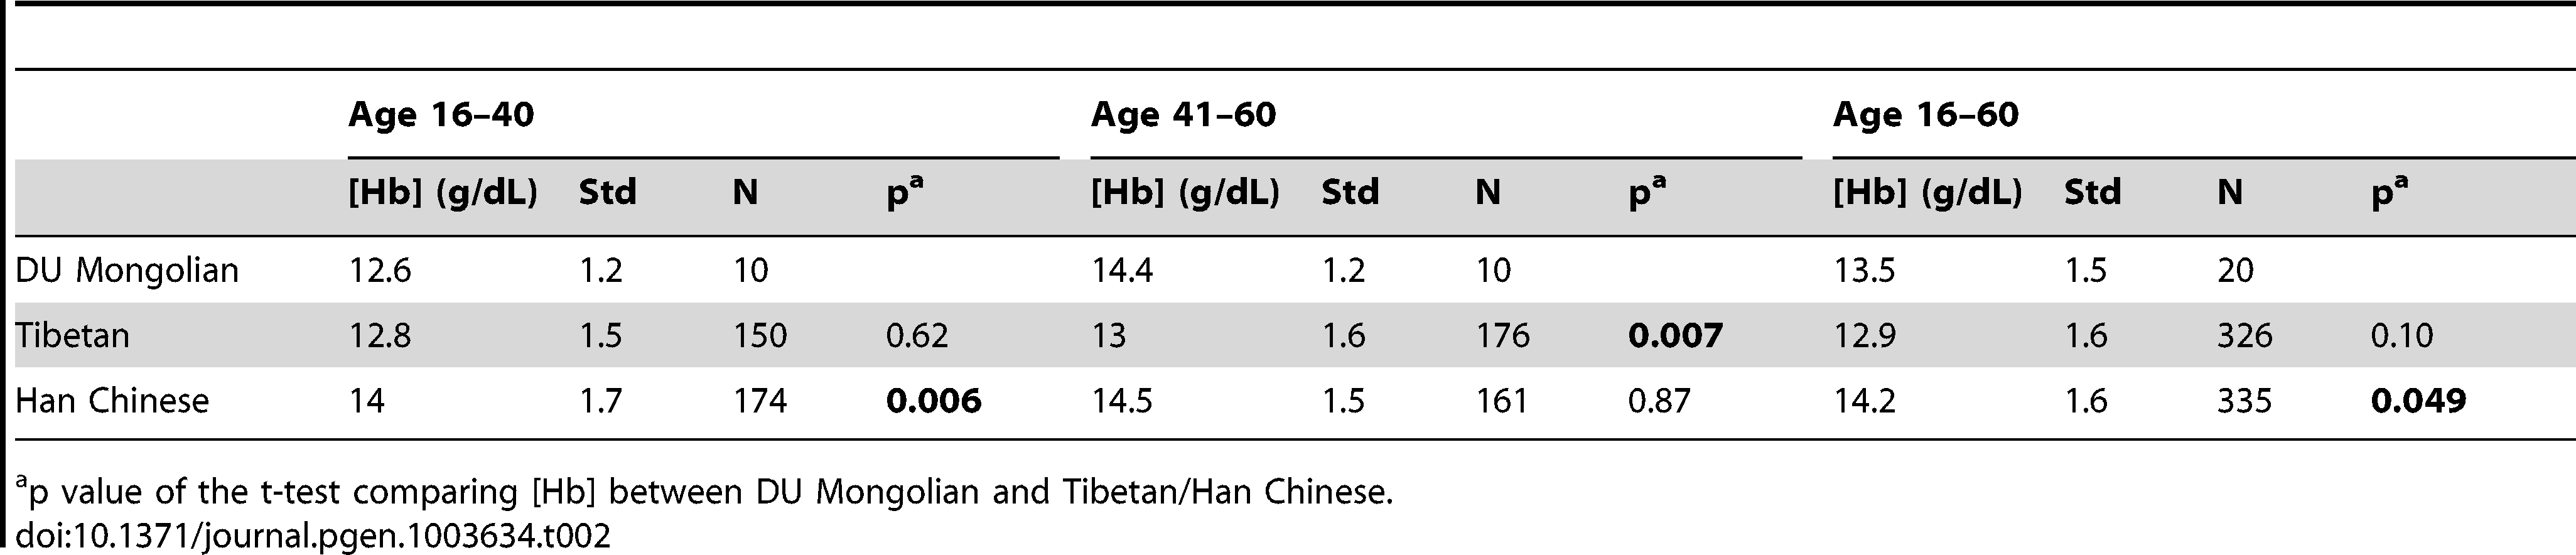 [Hb] comparisons among DU Mongolians, Tibetans, and Han Chinese.